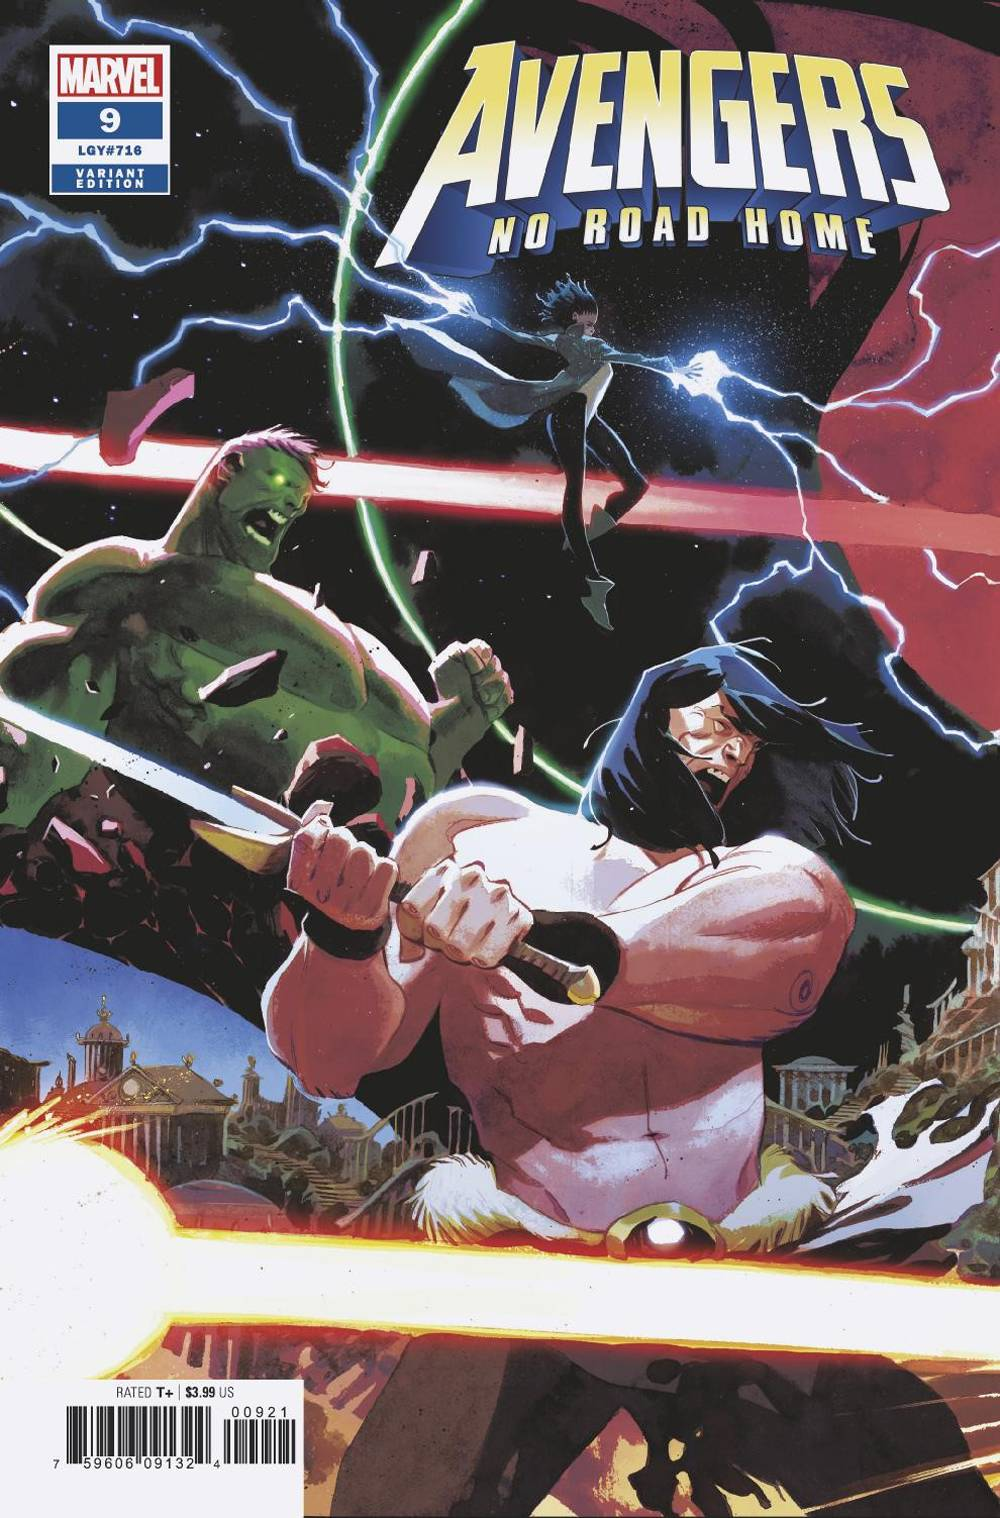 AVENGERS NO ROAD HOME 9 of 10 SCALERA CONNECTING VAR.jpg